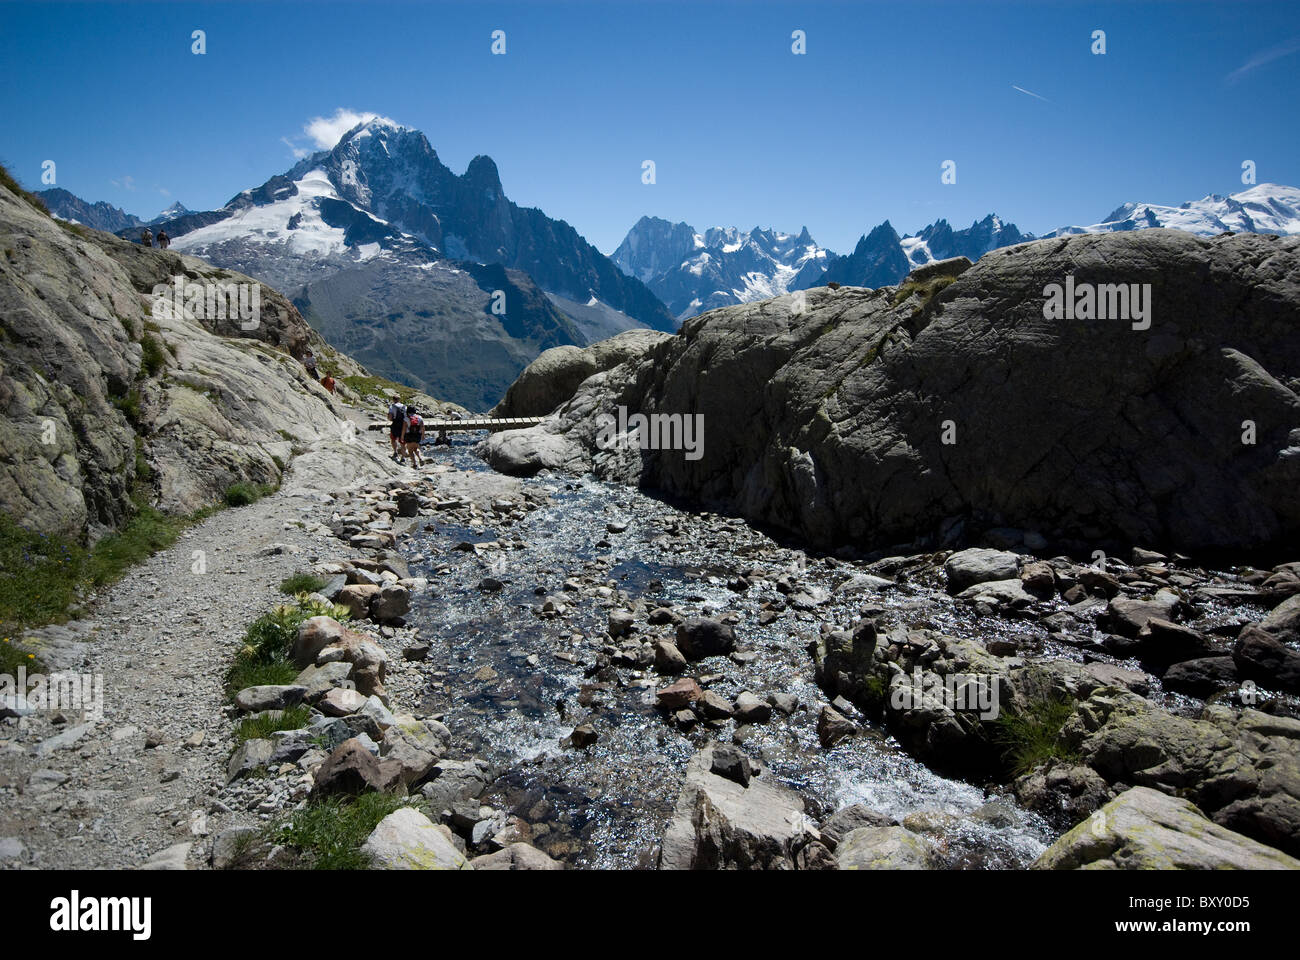 A river leads from Lac Blanc, opposite the peaks of Aiguille Verte and Mont Blanc, French Alps. - Stock Image